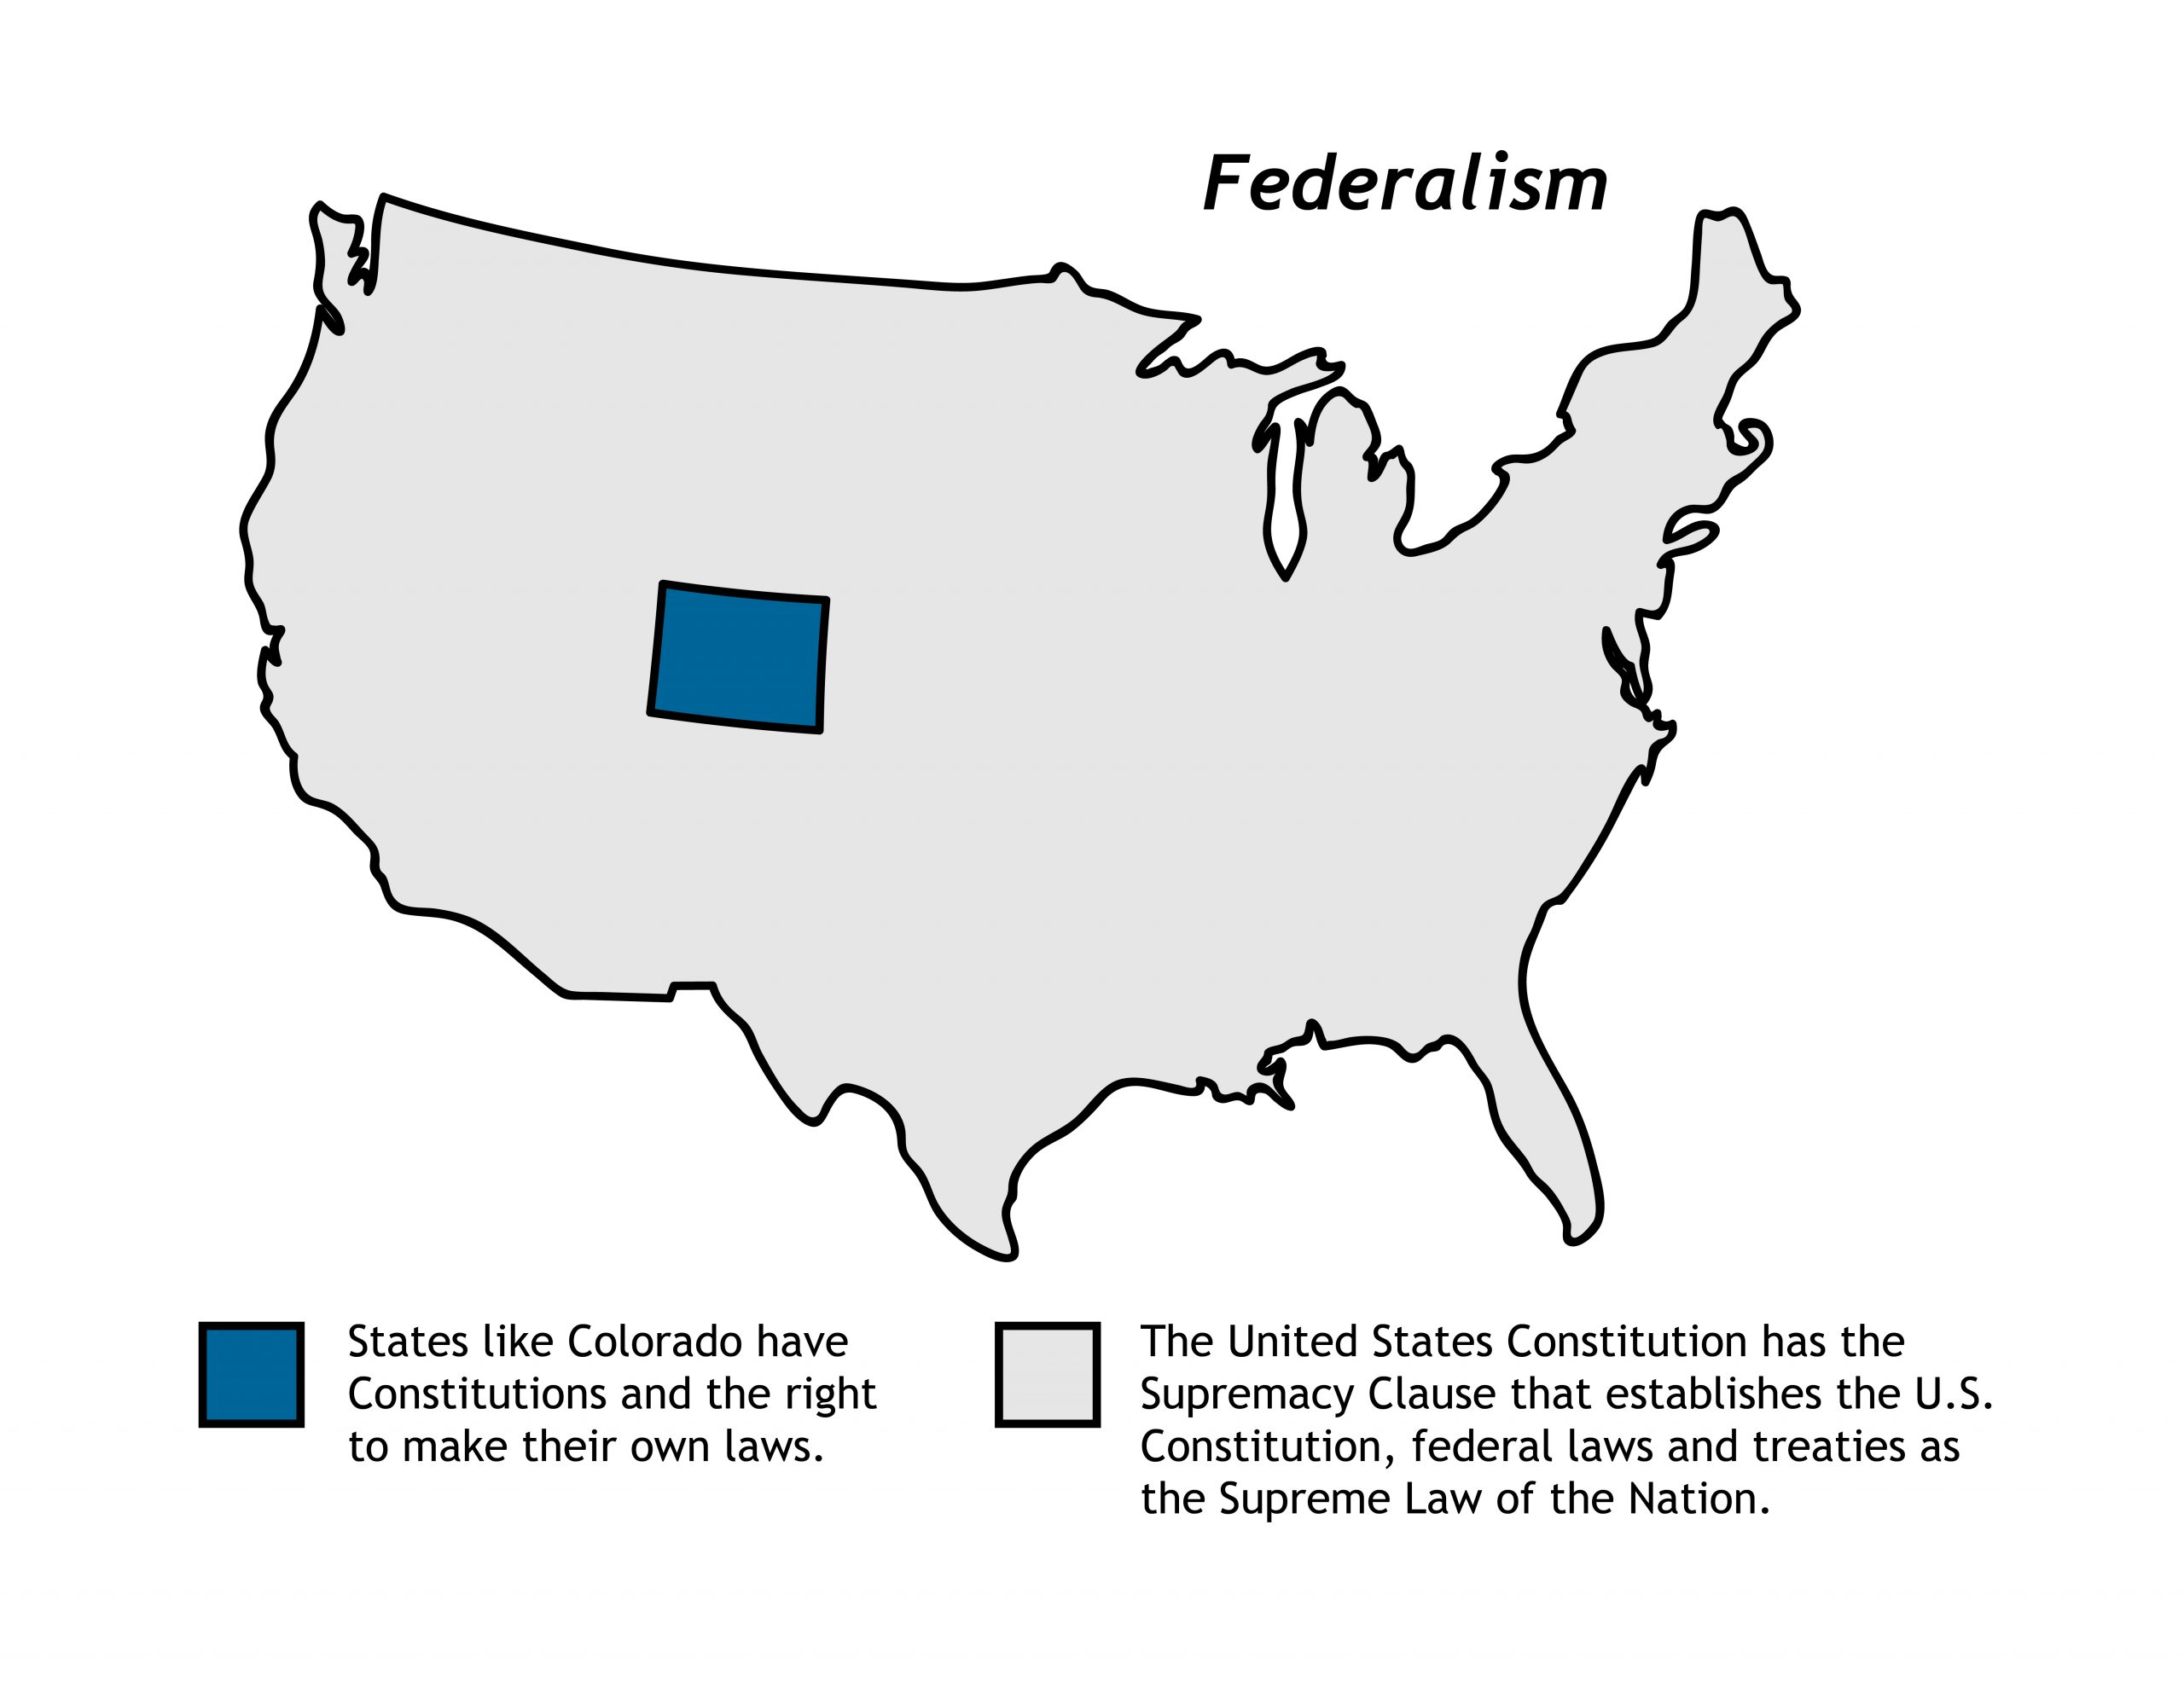 map of United States showing federalism principles